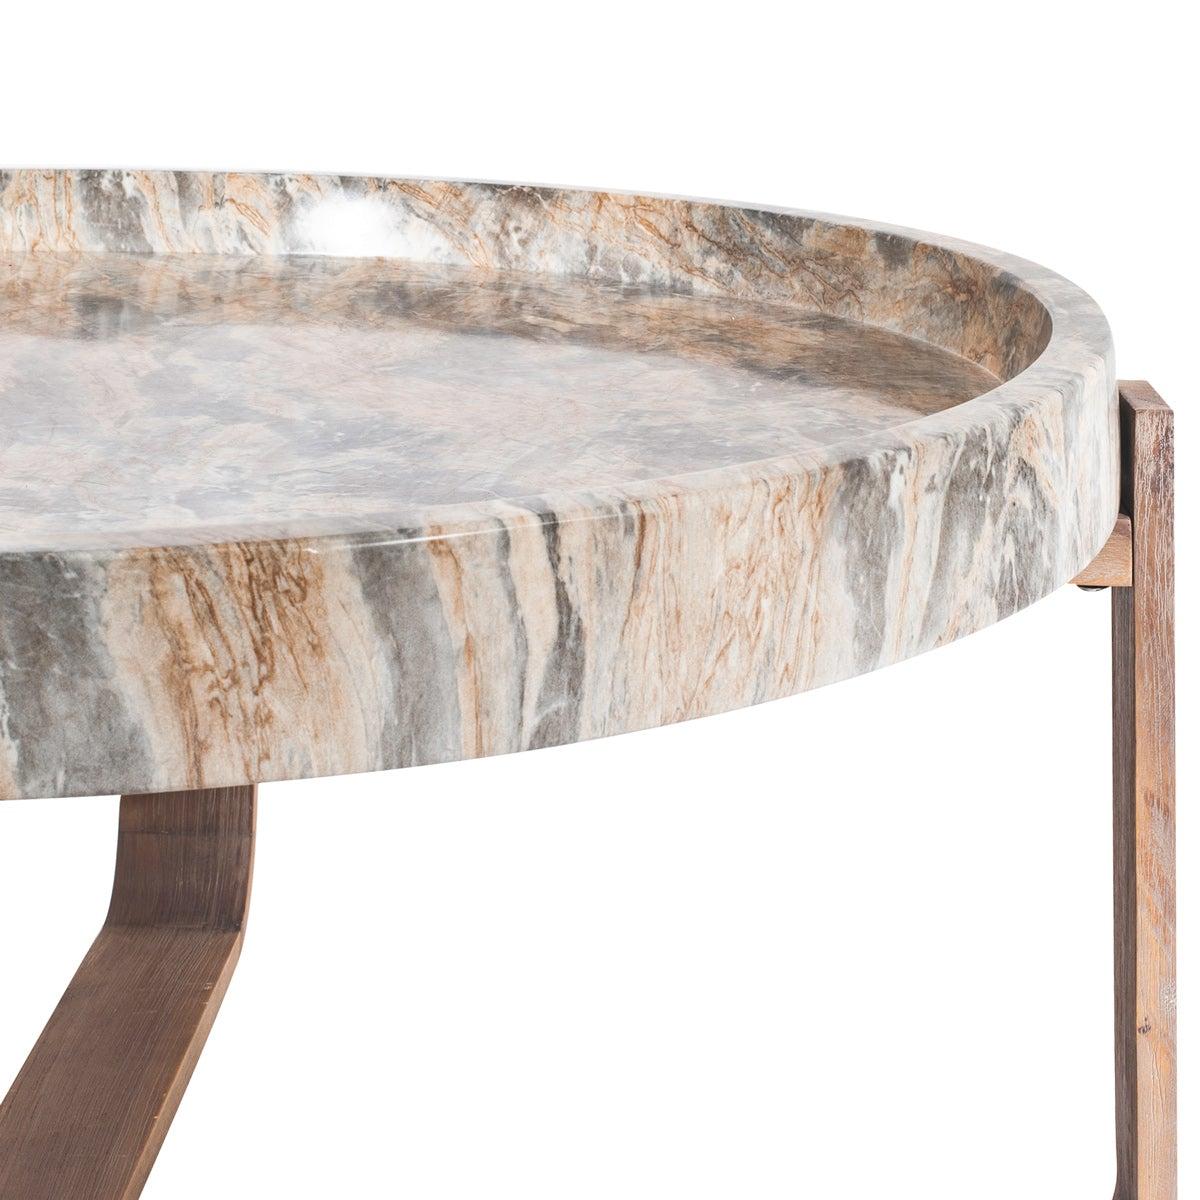 Positano Coffee Table - ModShop1.com